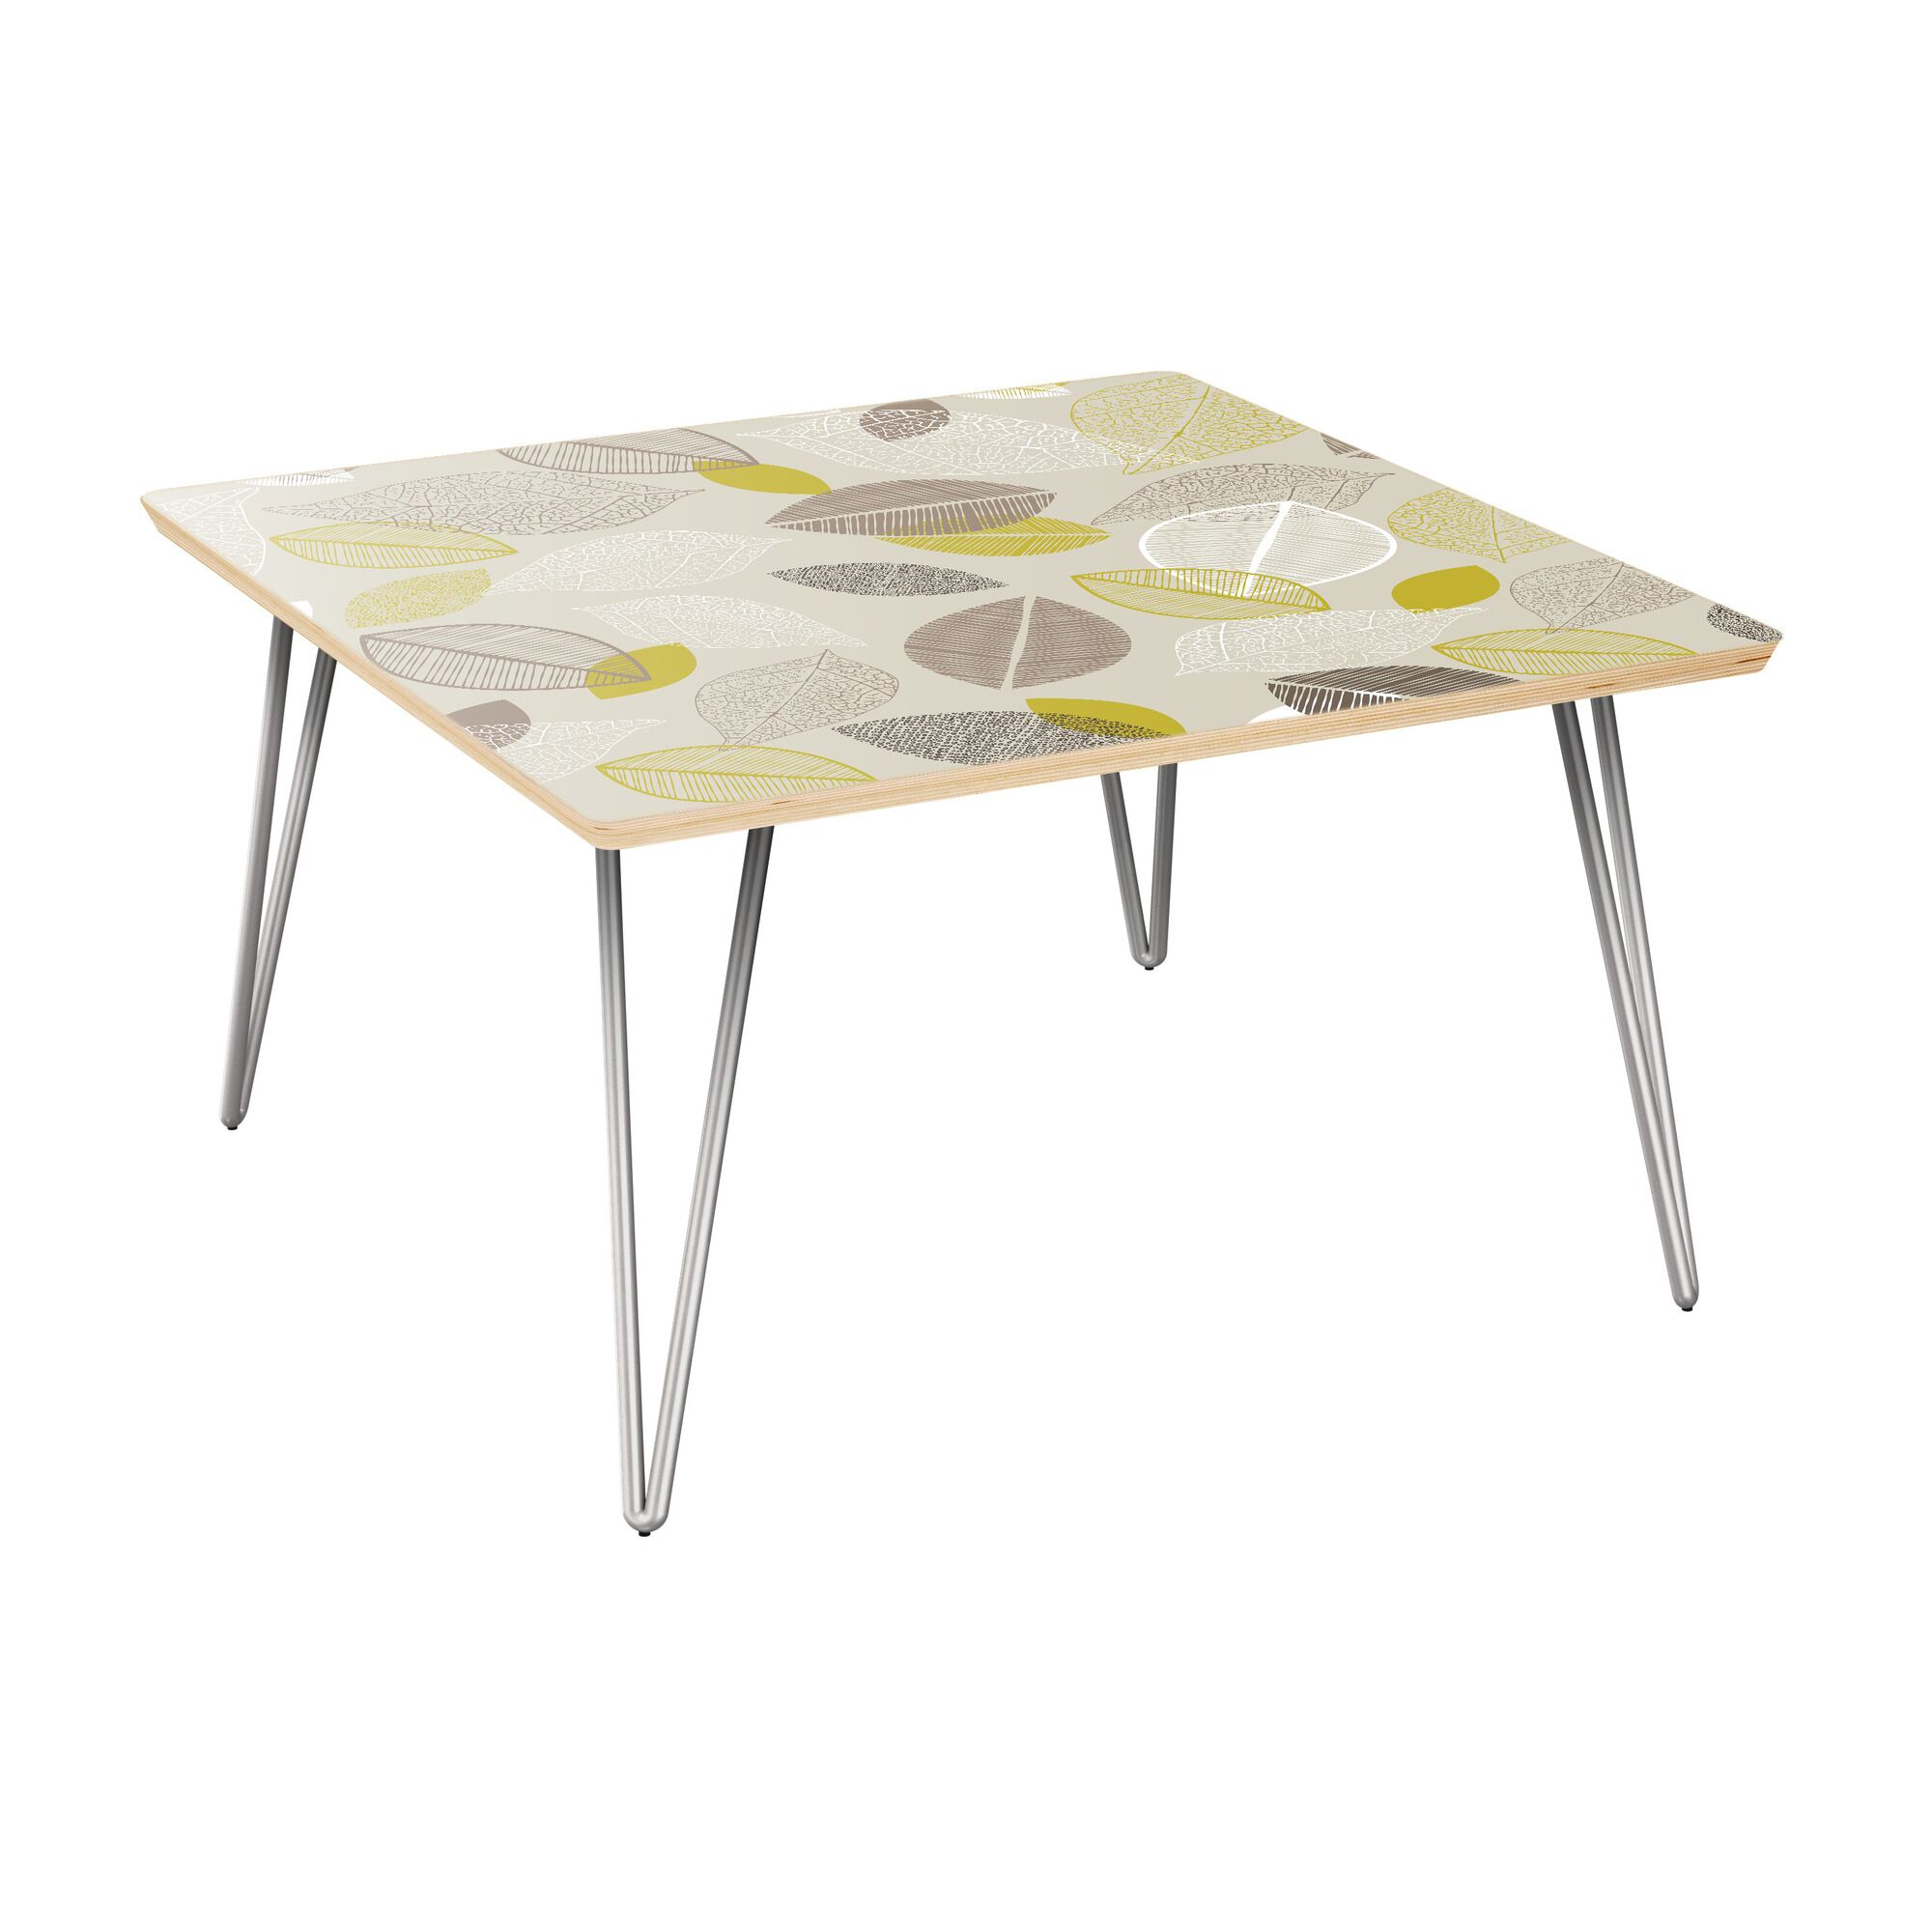 La Mesa Coffee Table Table Top Boarder Color: Natural, Table Base Color: Chrome, Table Top Color: Green/Brown